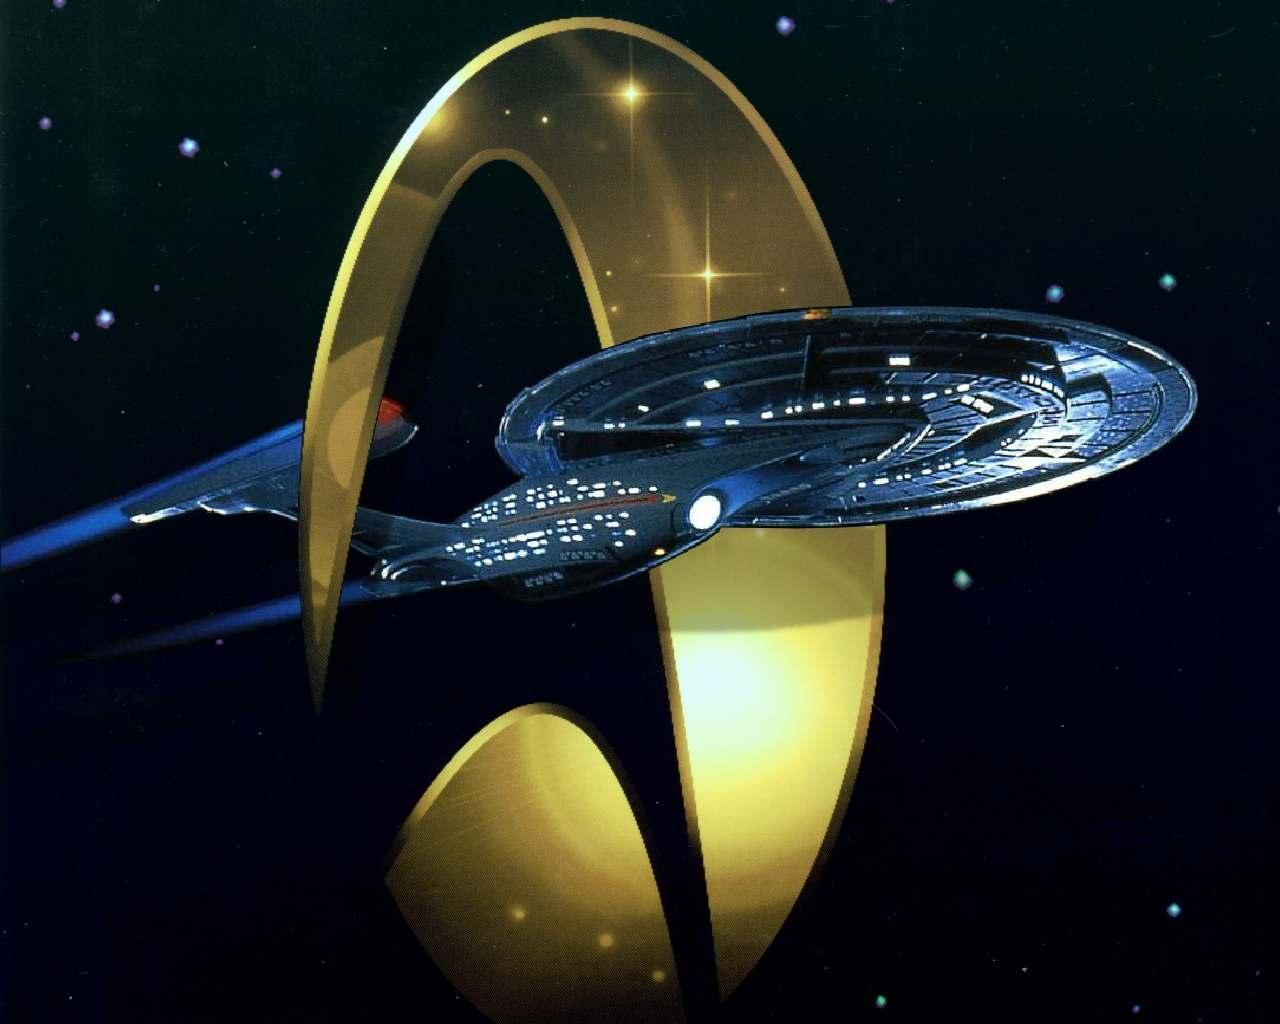 Enterprise Star Trek Wallpaper Star Trek Starships Star Trek